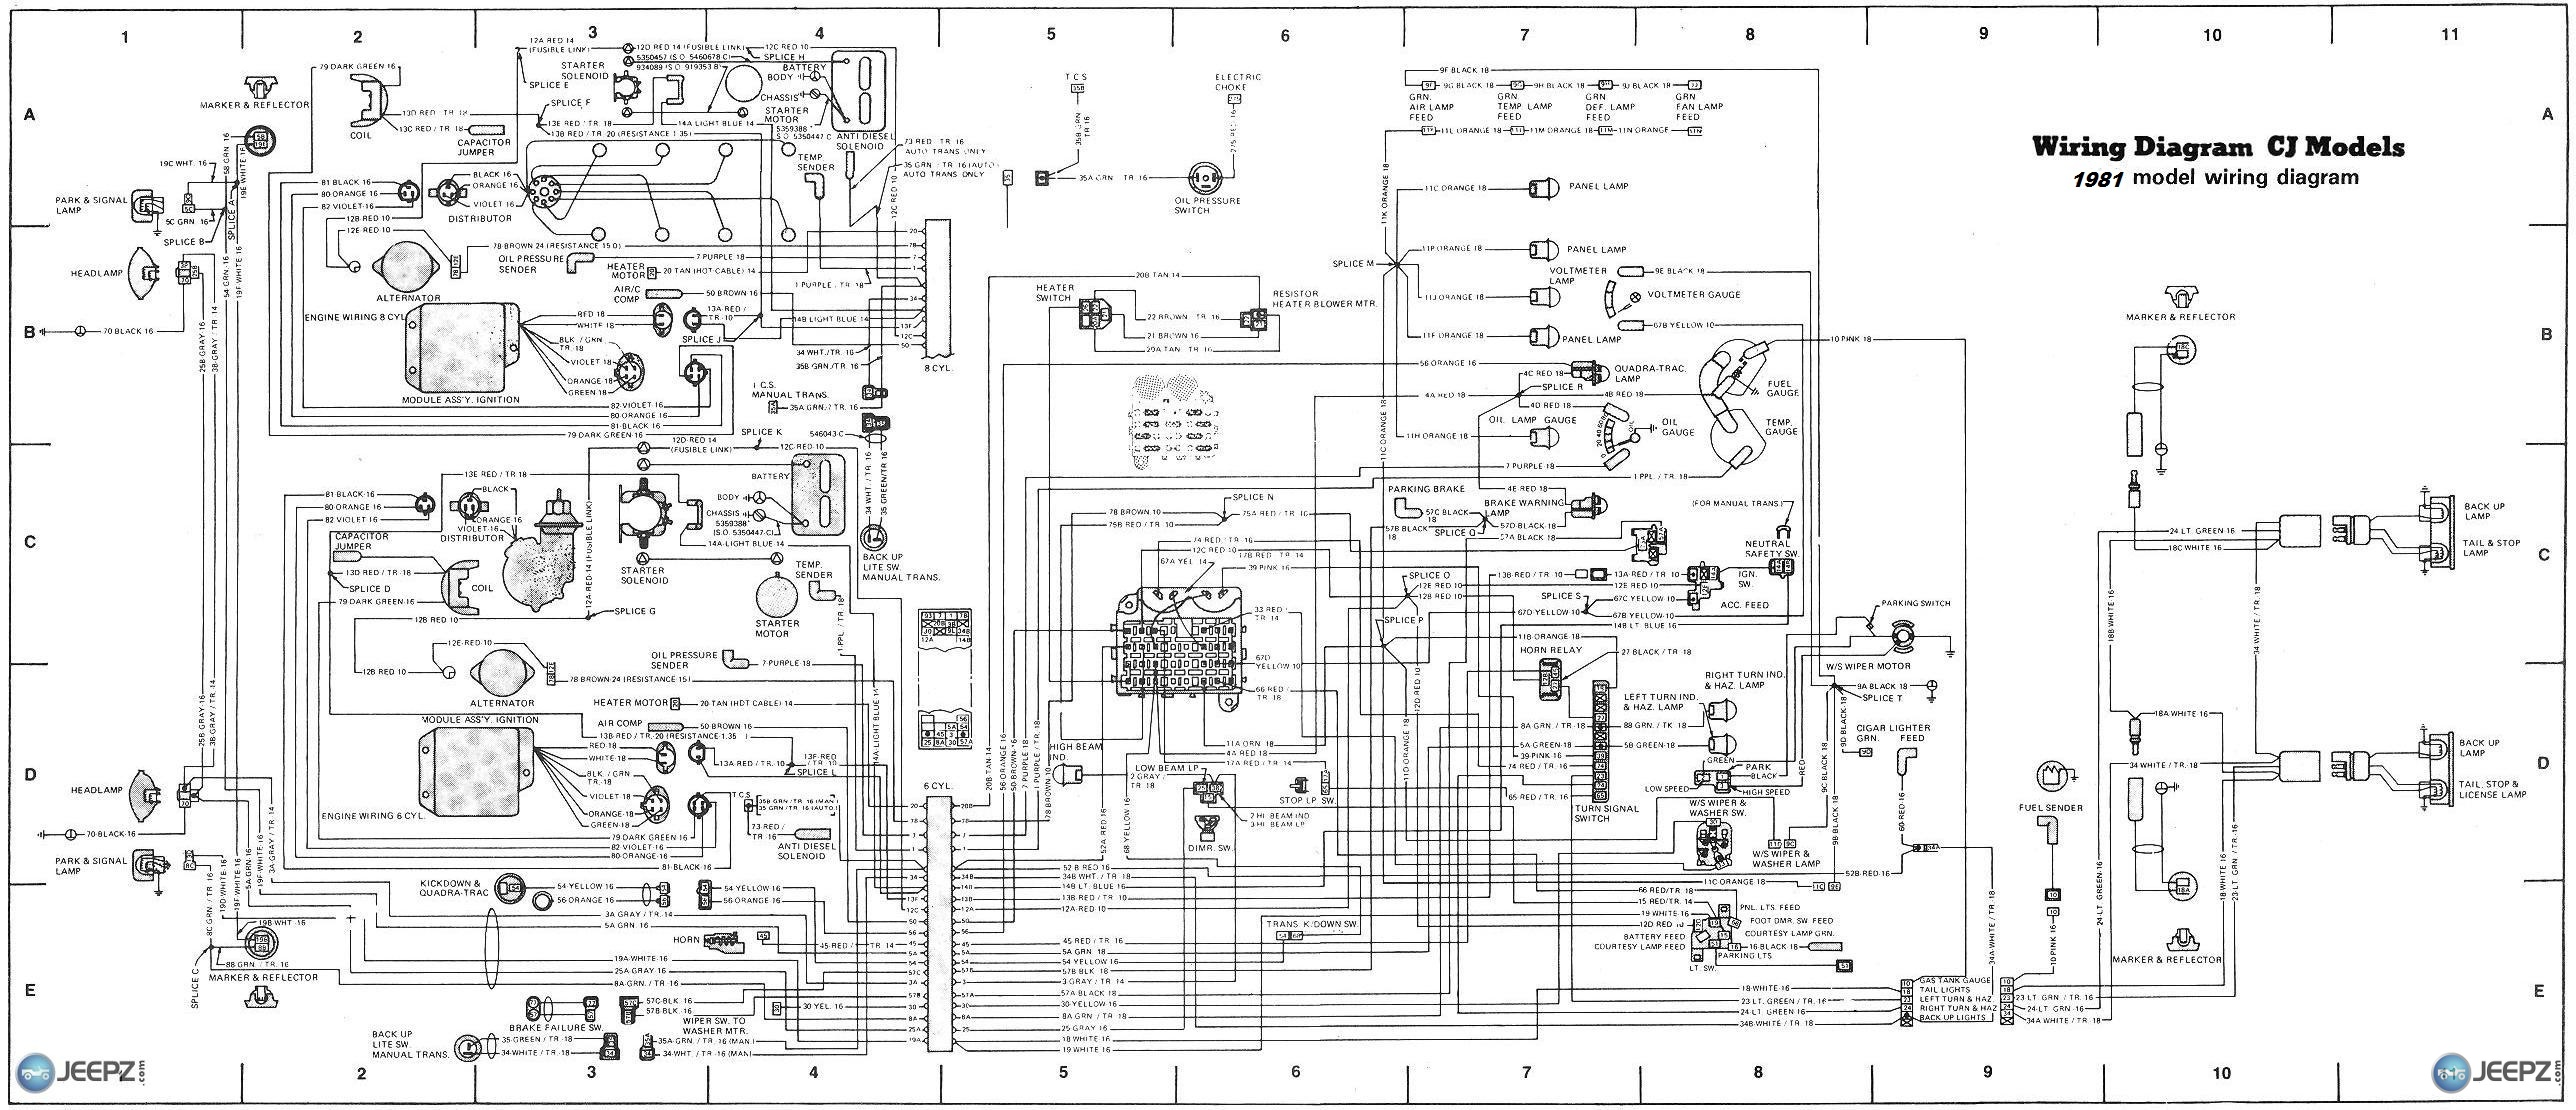 jeep wiring diagram 1975 cj5 - Wiring Diagram and Schematic